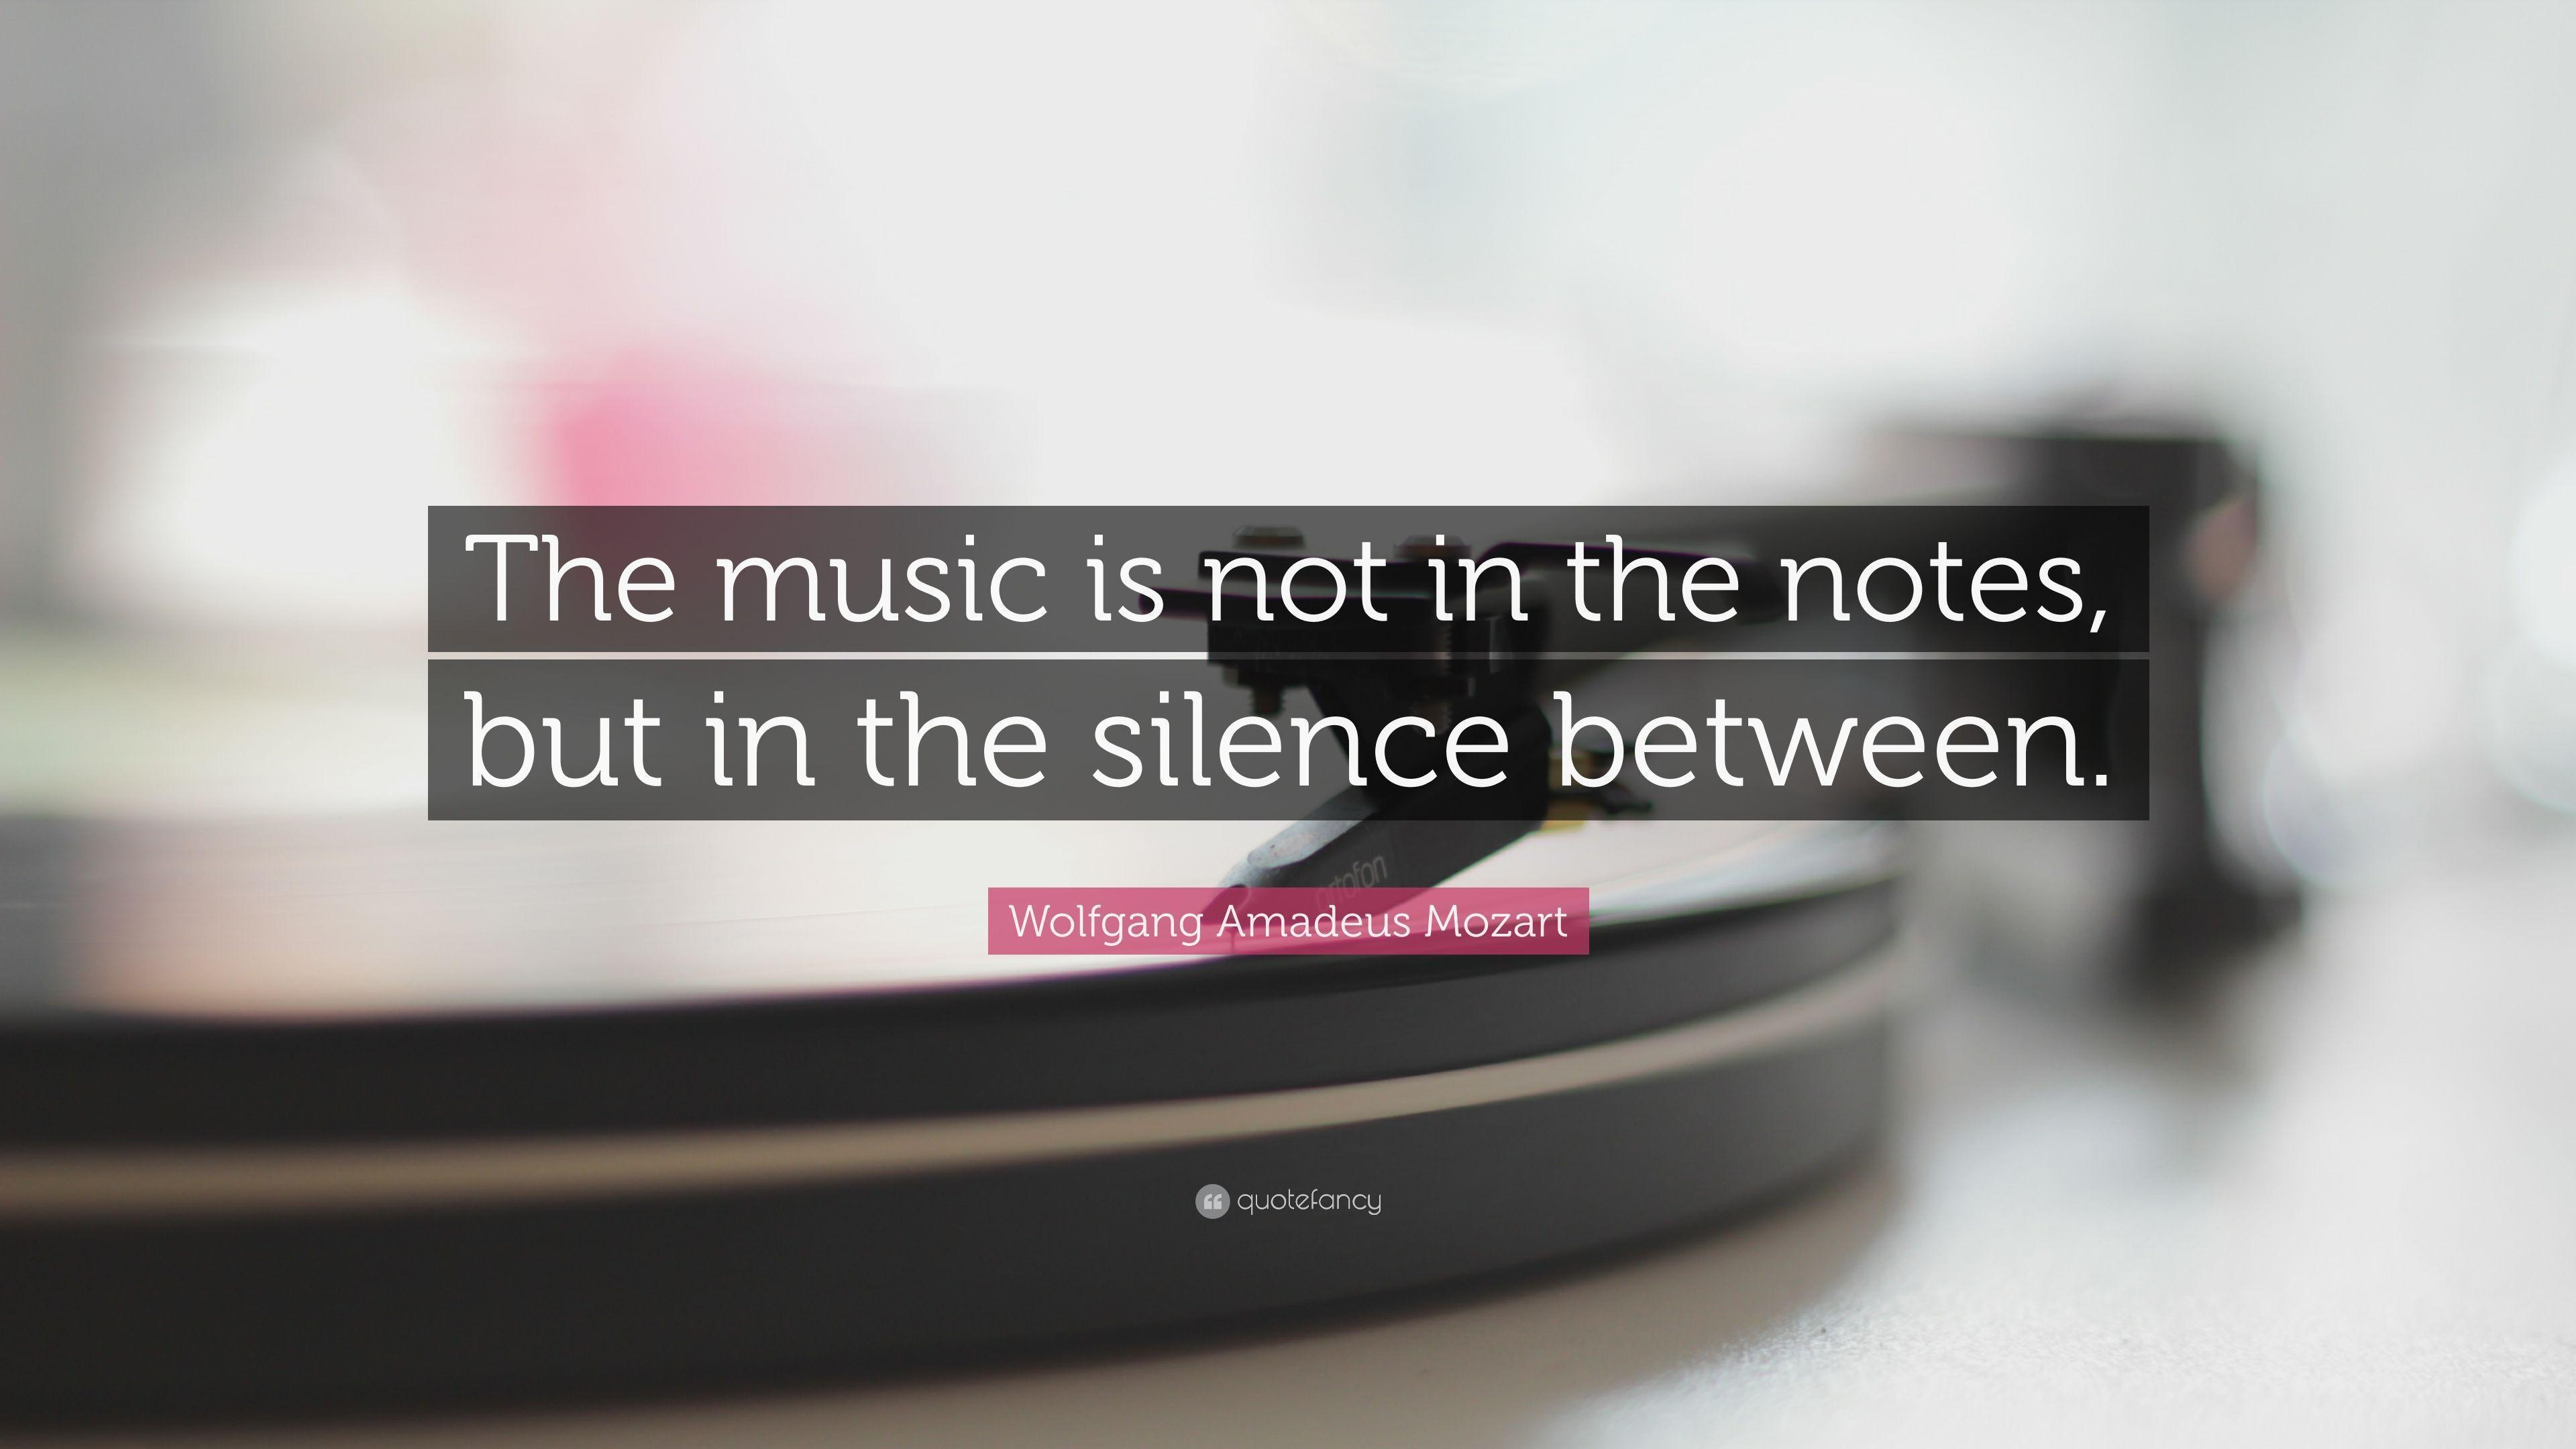 Wolfgang Amadeus Mozart Quotes (69 wallpapers) - Quotefancy